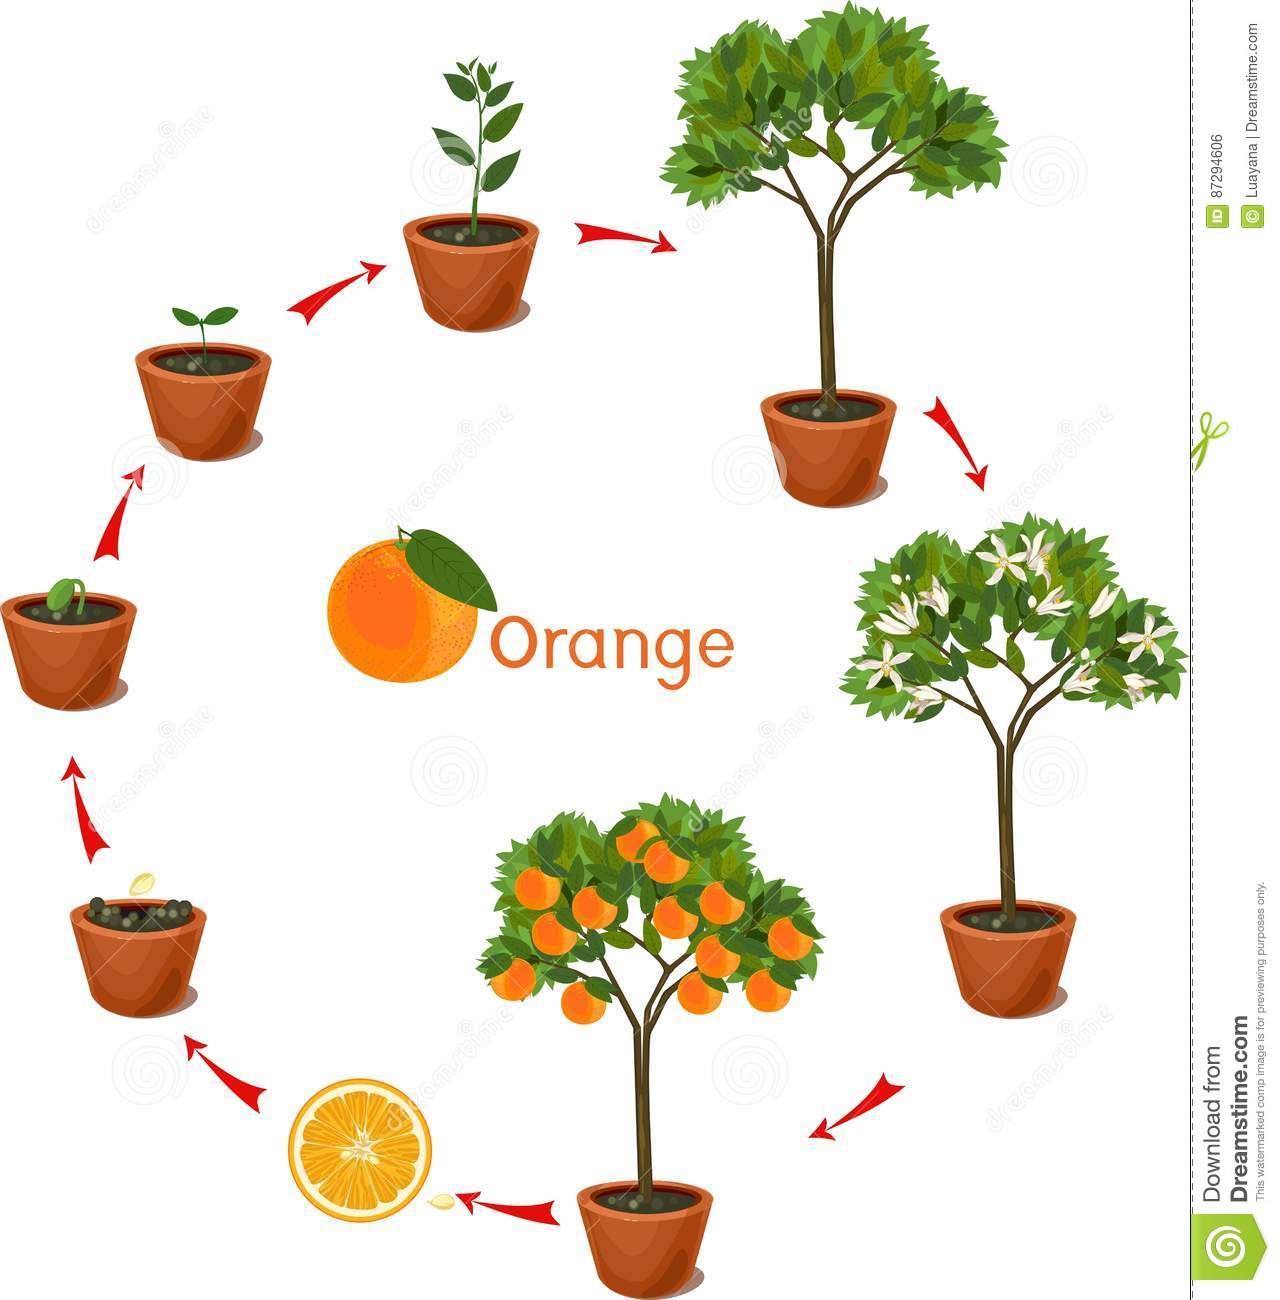 Plant Growing From Seed To Orange Tree Life Cycle Plant Stock Vector